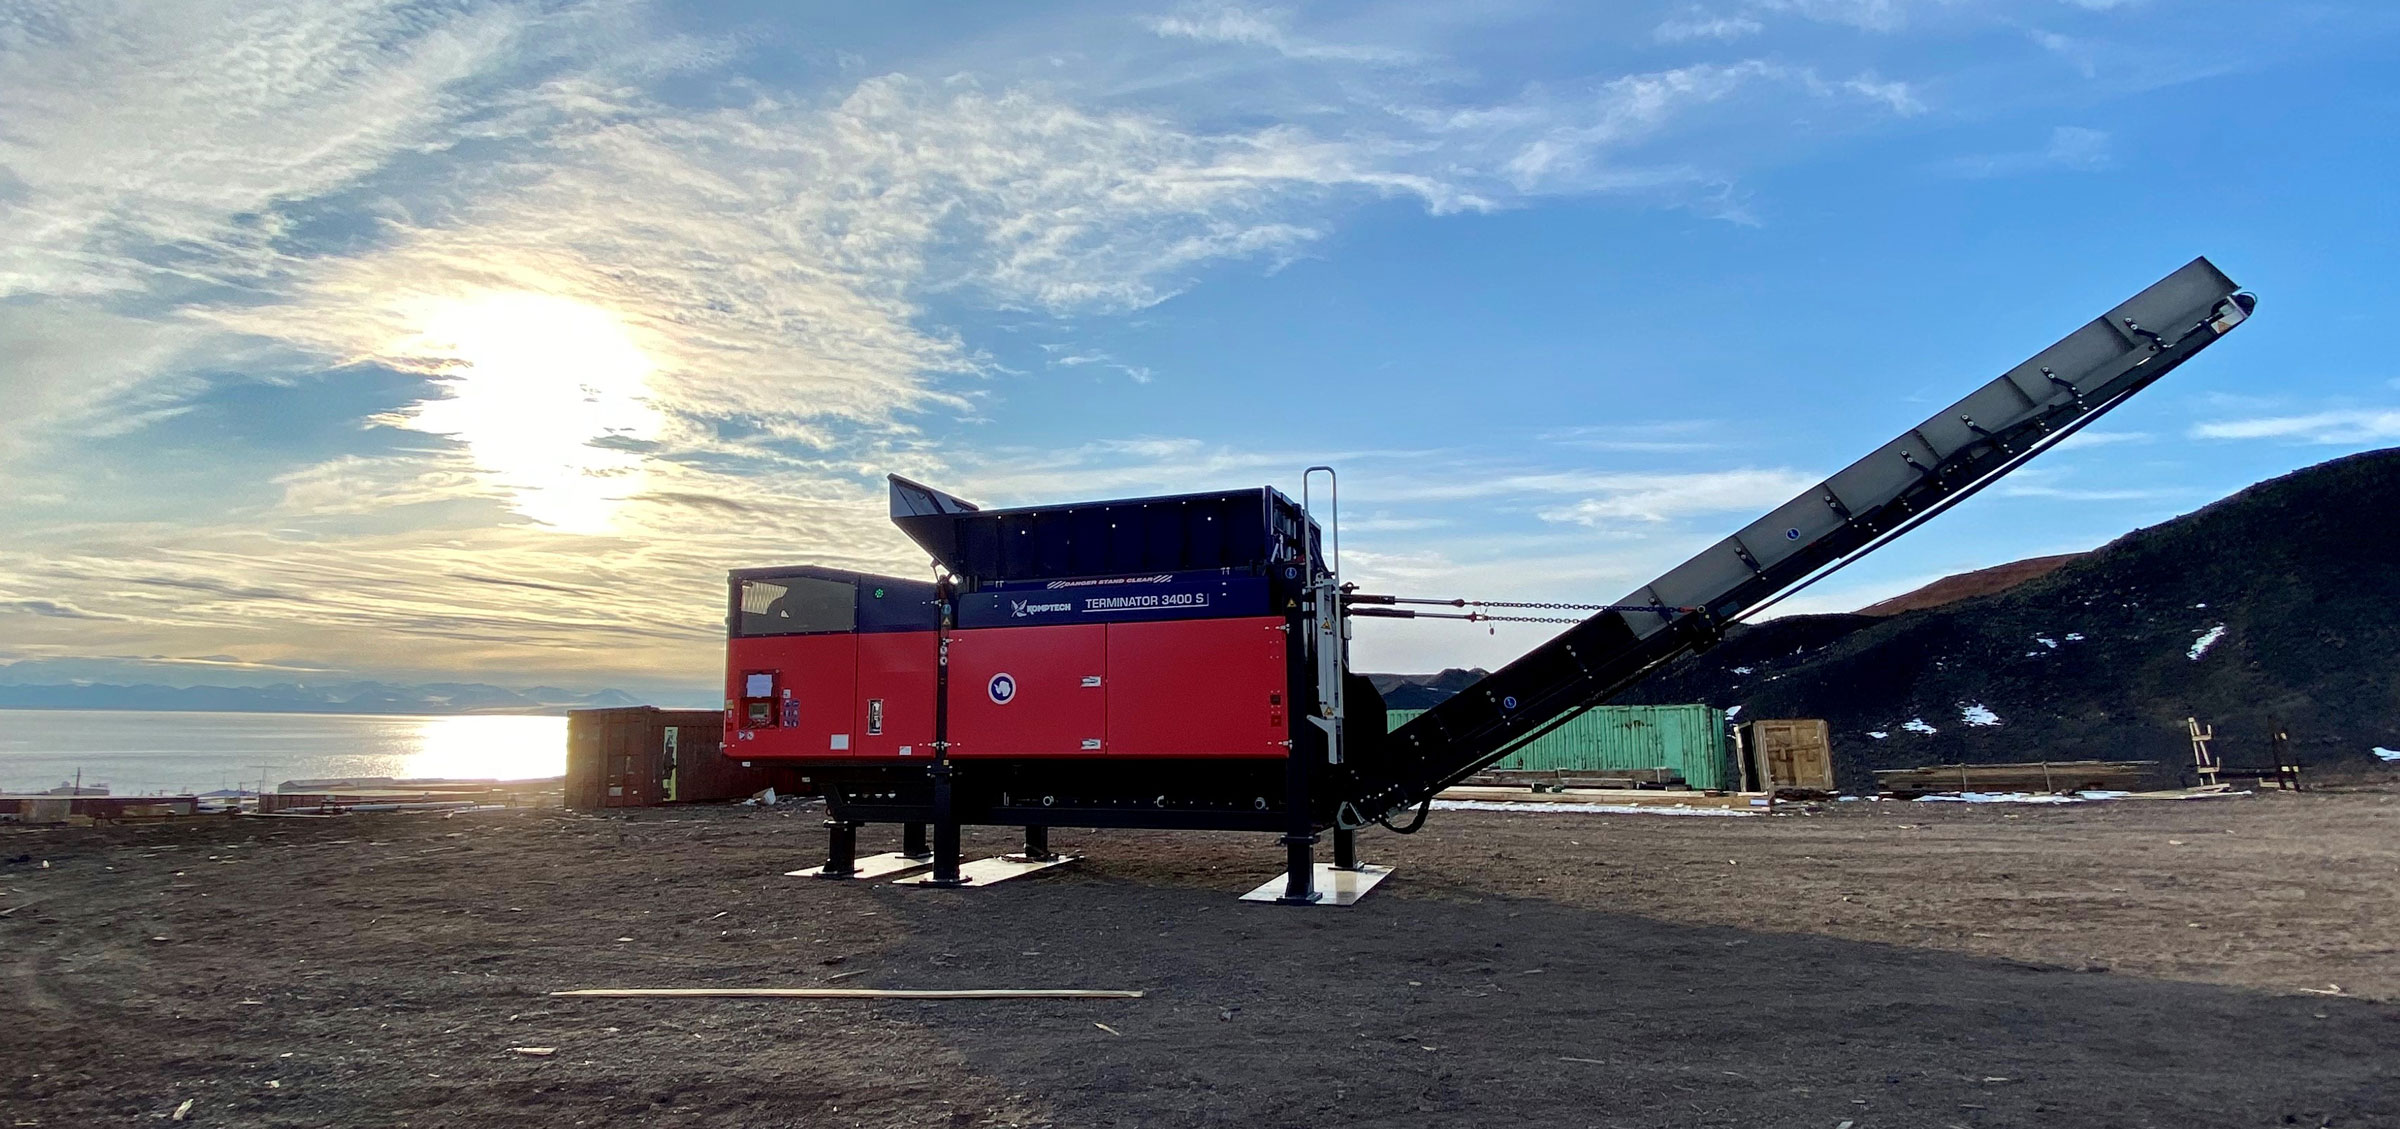 The Komptech Terminator Single-Shaft Waste Shredder at McMurdo Station in Antarctica